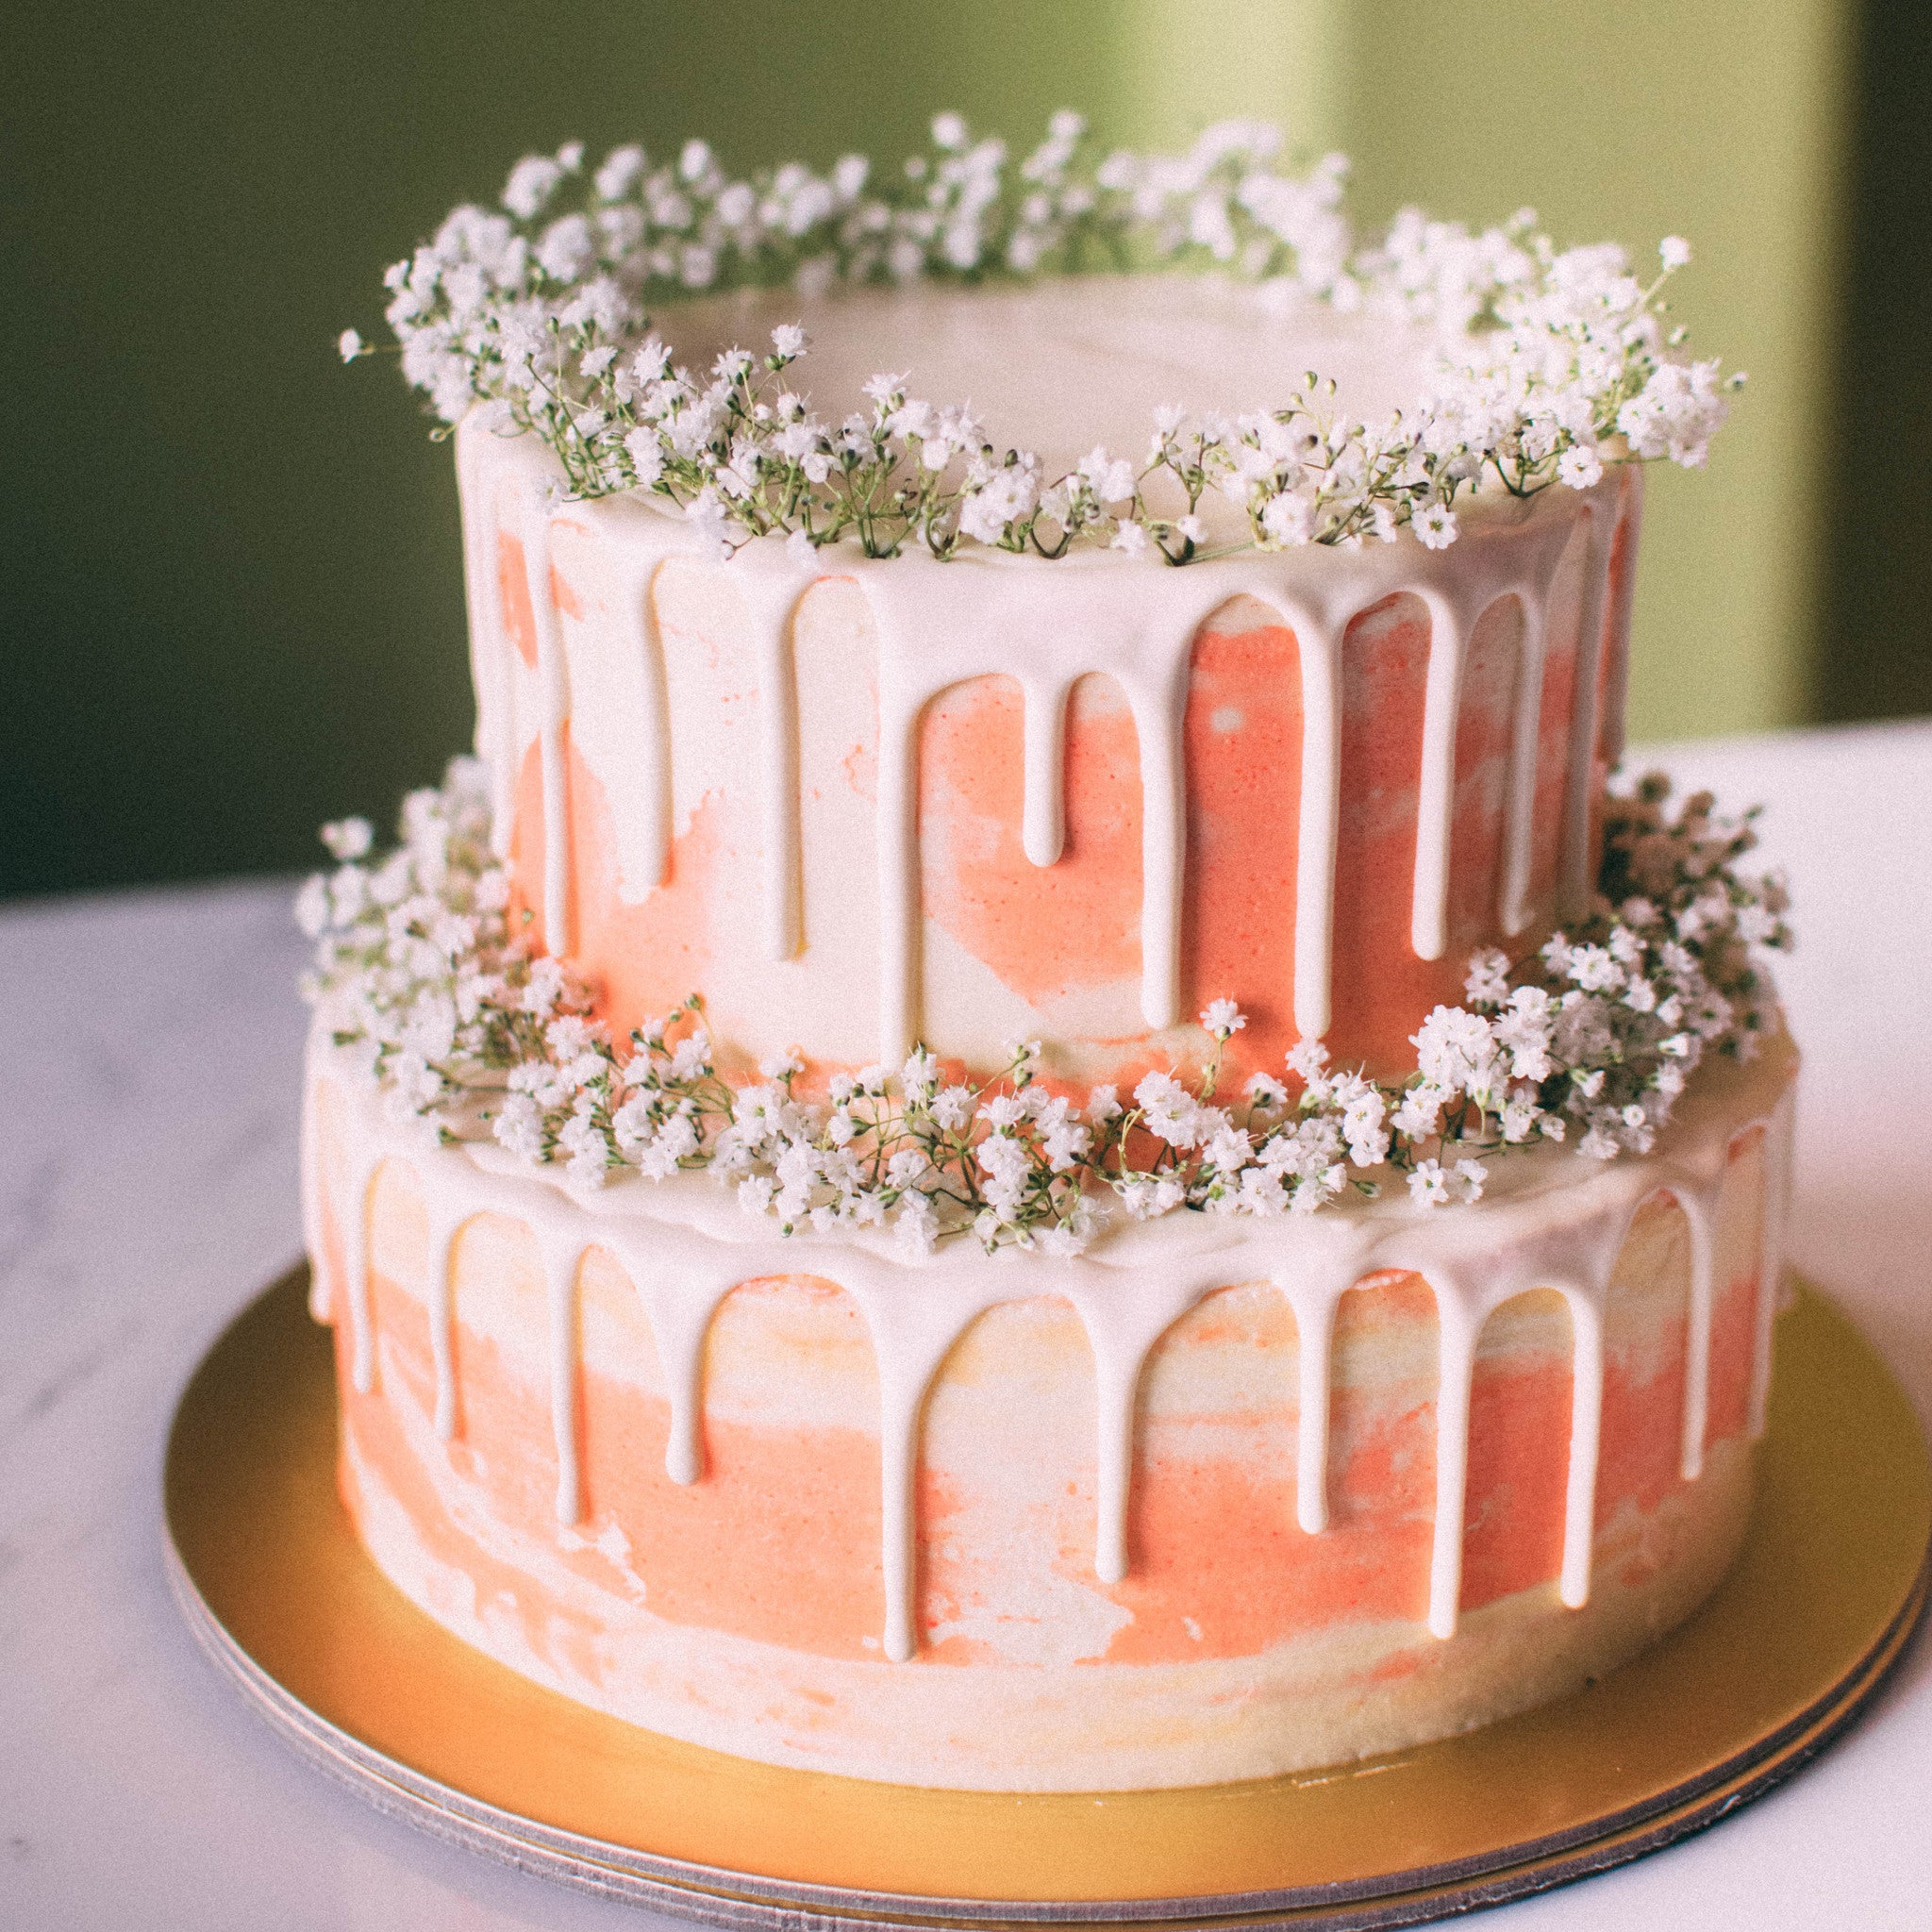 Two-Tier Marbled Drizzle Cake with Baby's Breath - Custom Bakes by Edith Patisserie